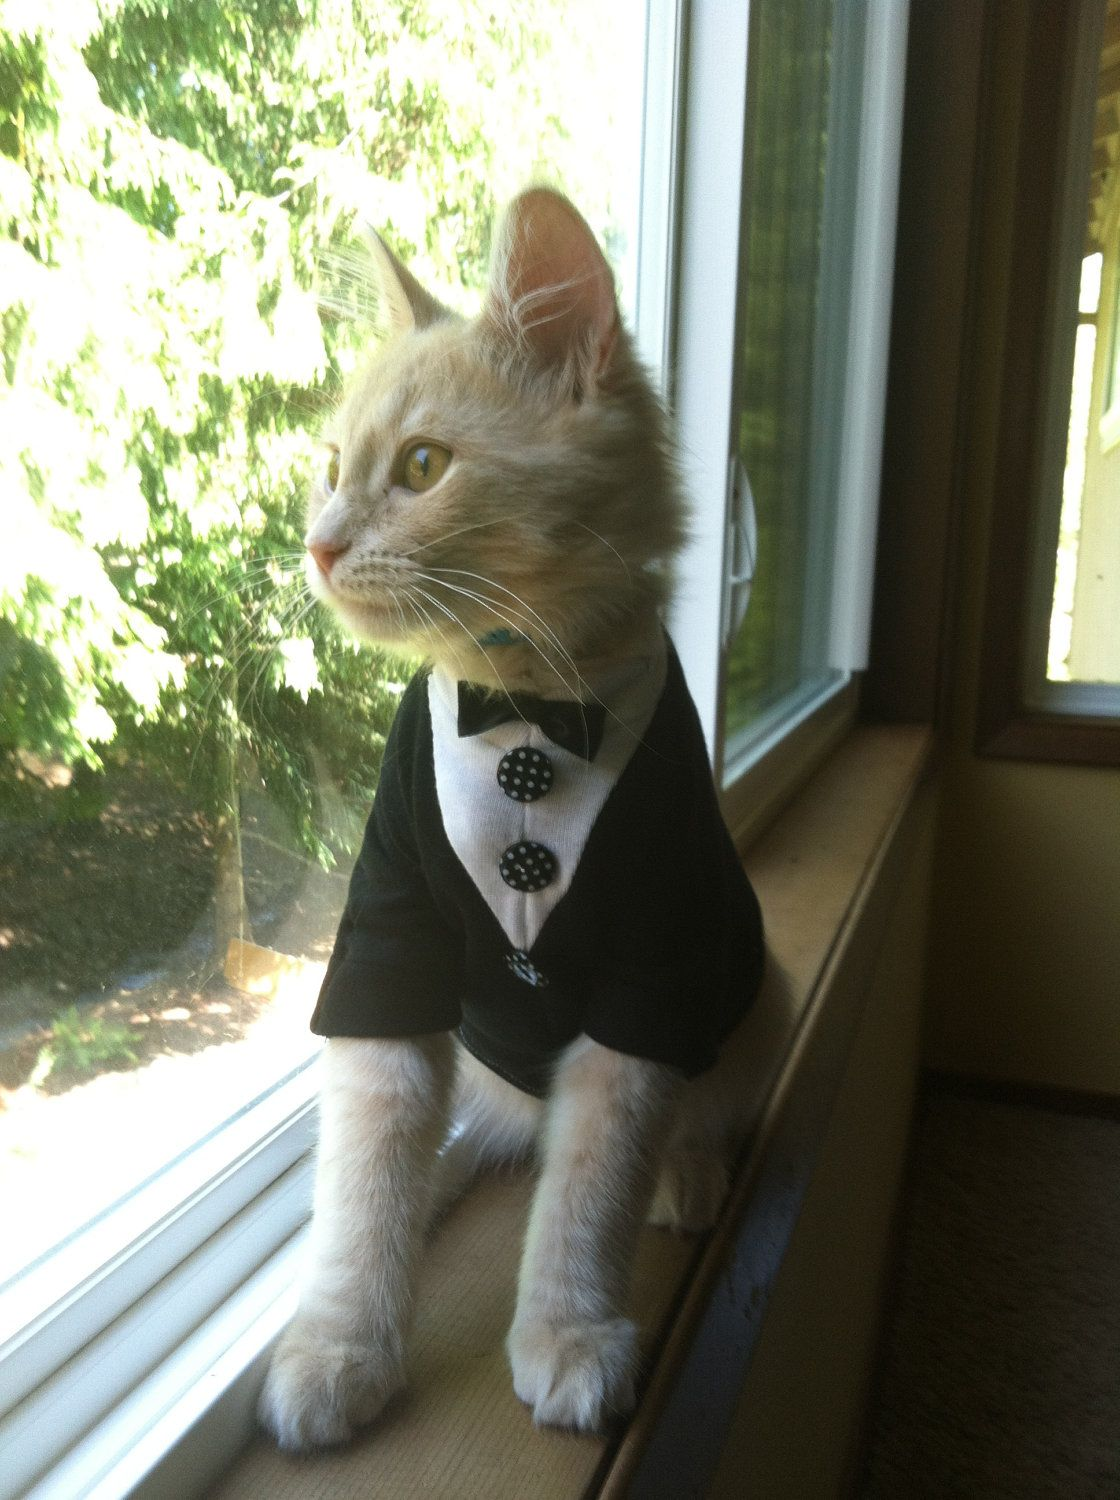 Items Similar To Tuxedo Cat Outfit Cat Clothes On Etsy Cat Clothes Pet Costumes Cats